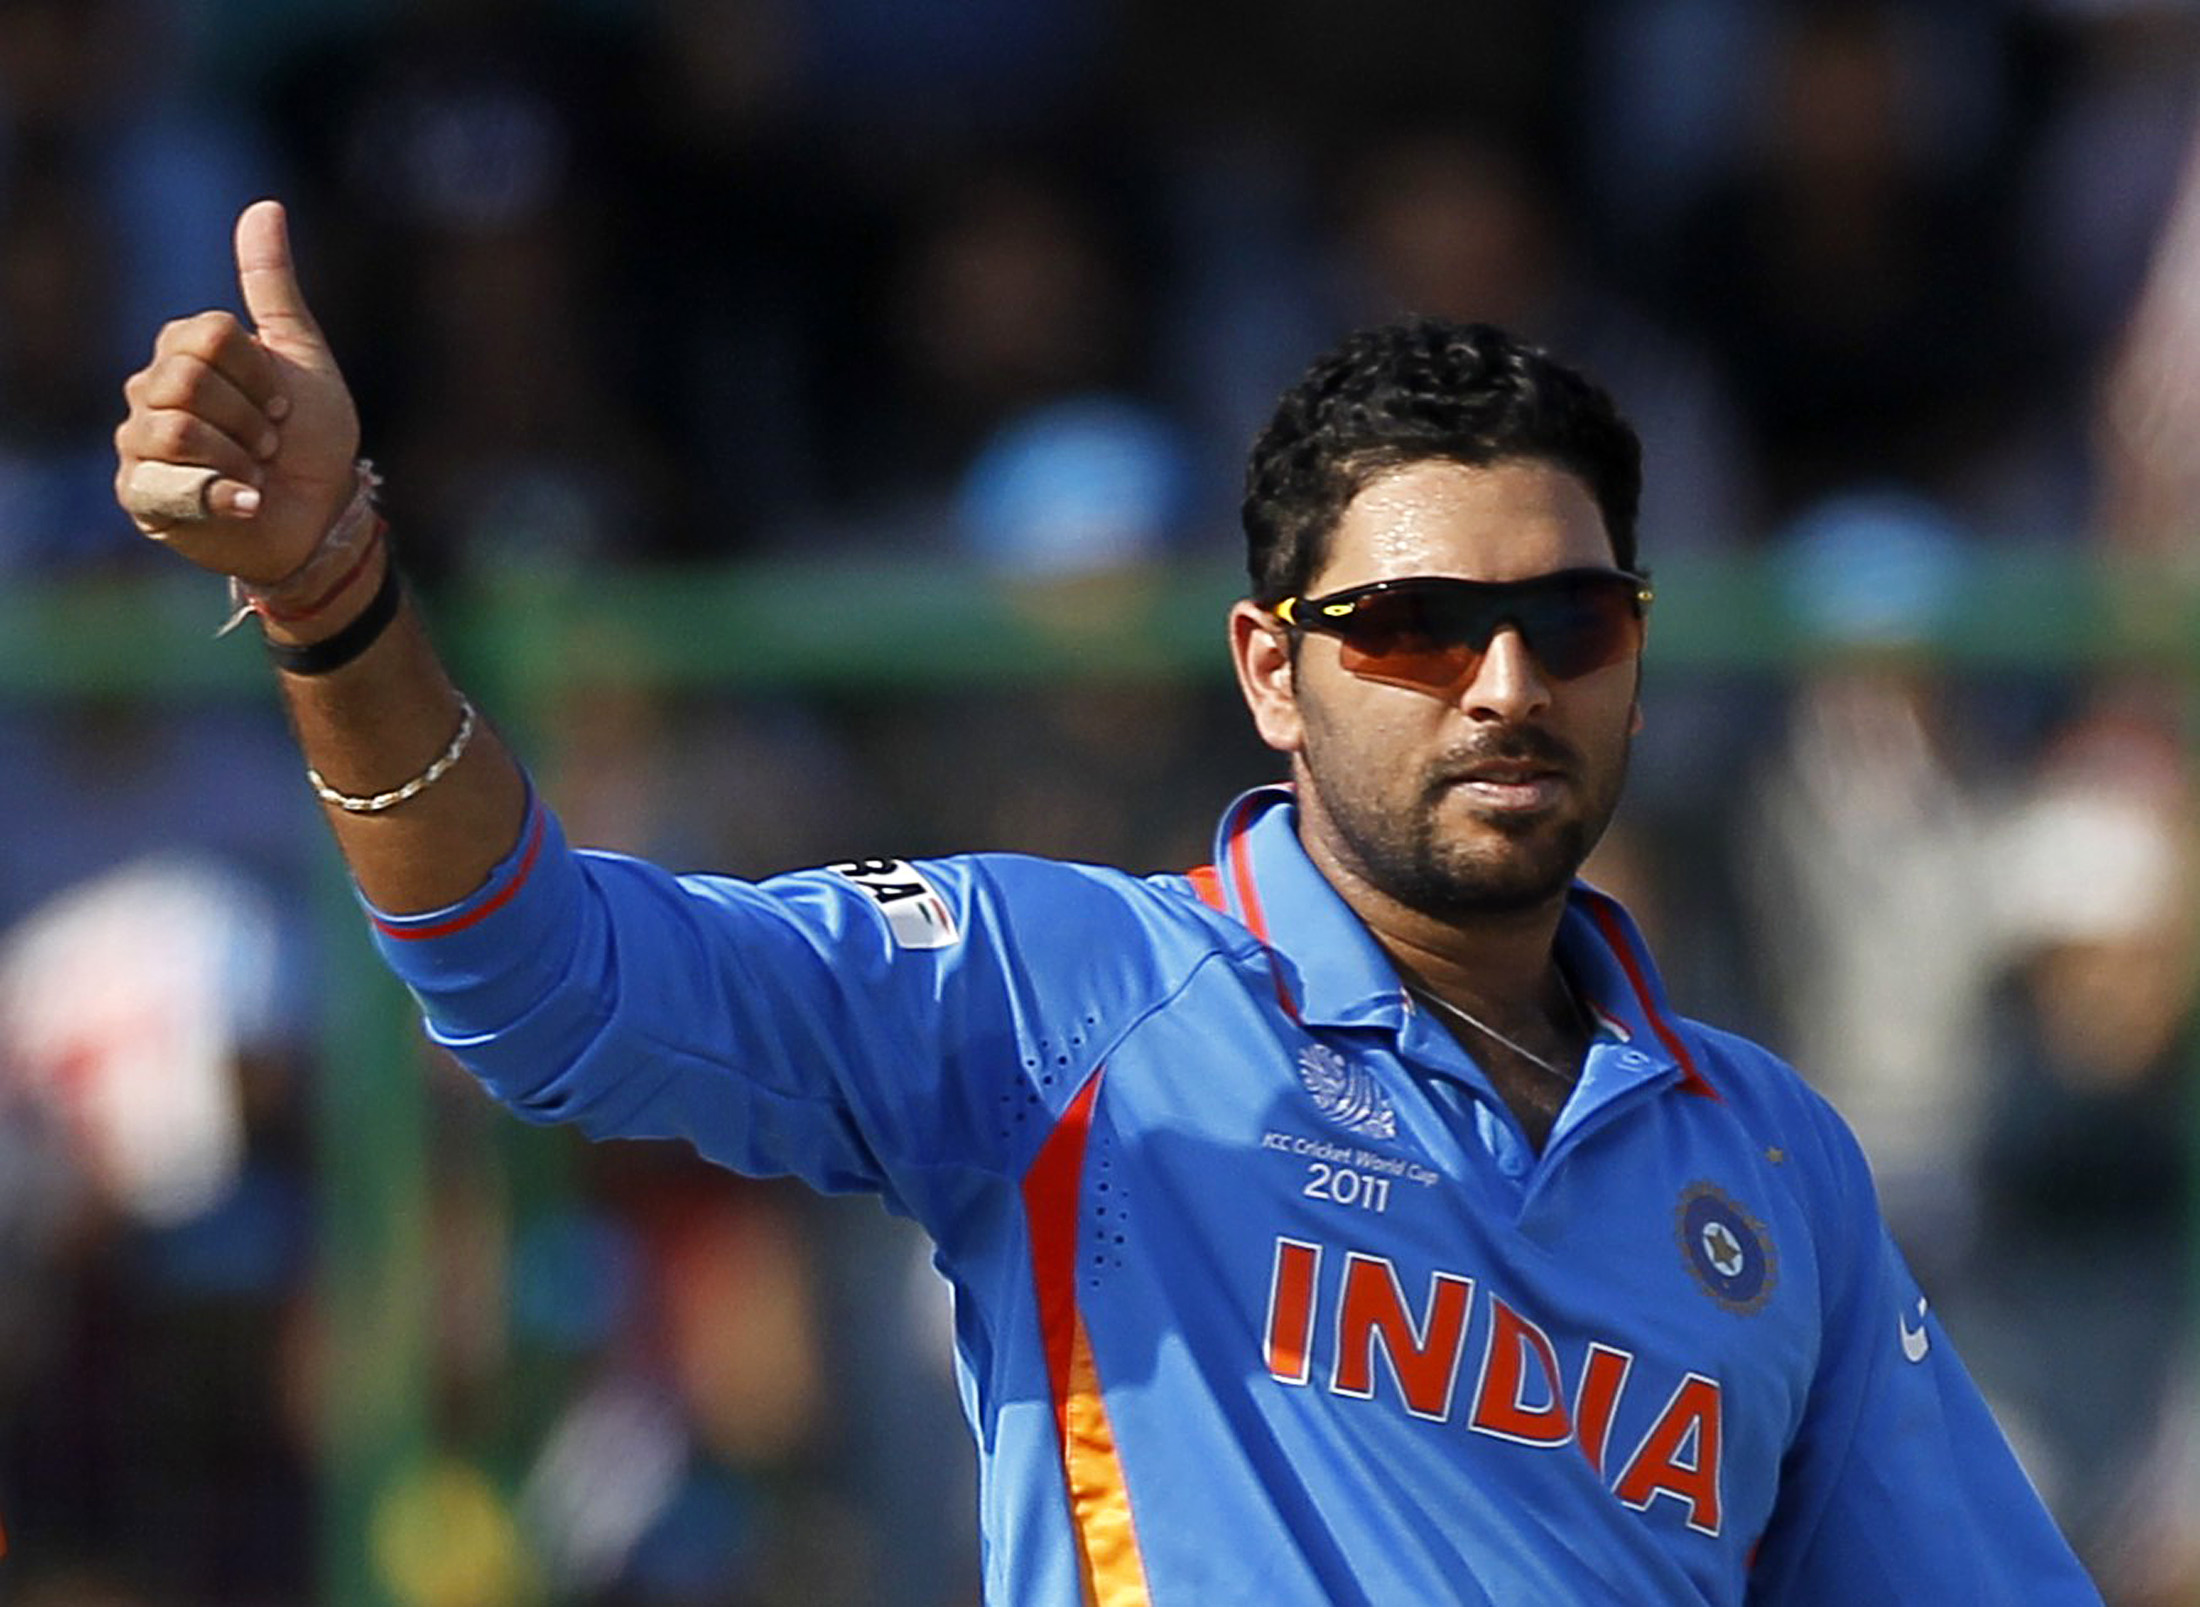 Yuvraj Singh Winning Moment Hd Wallpapers